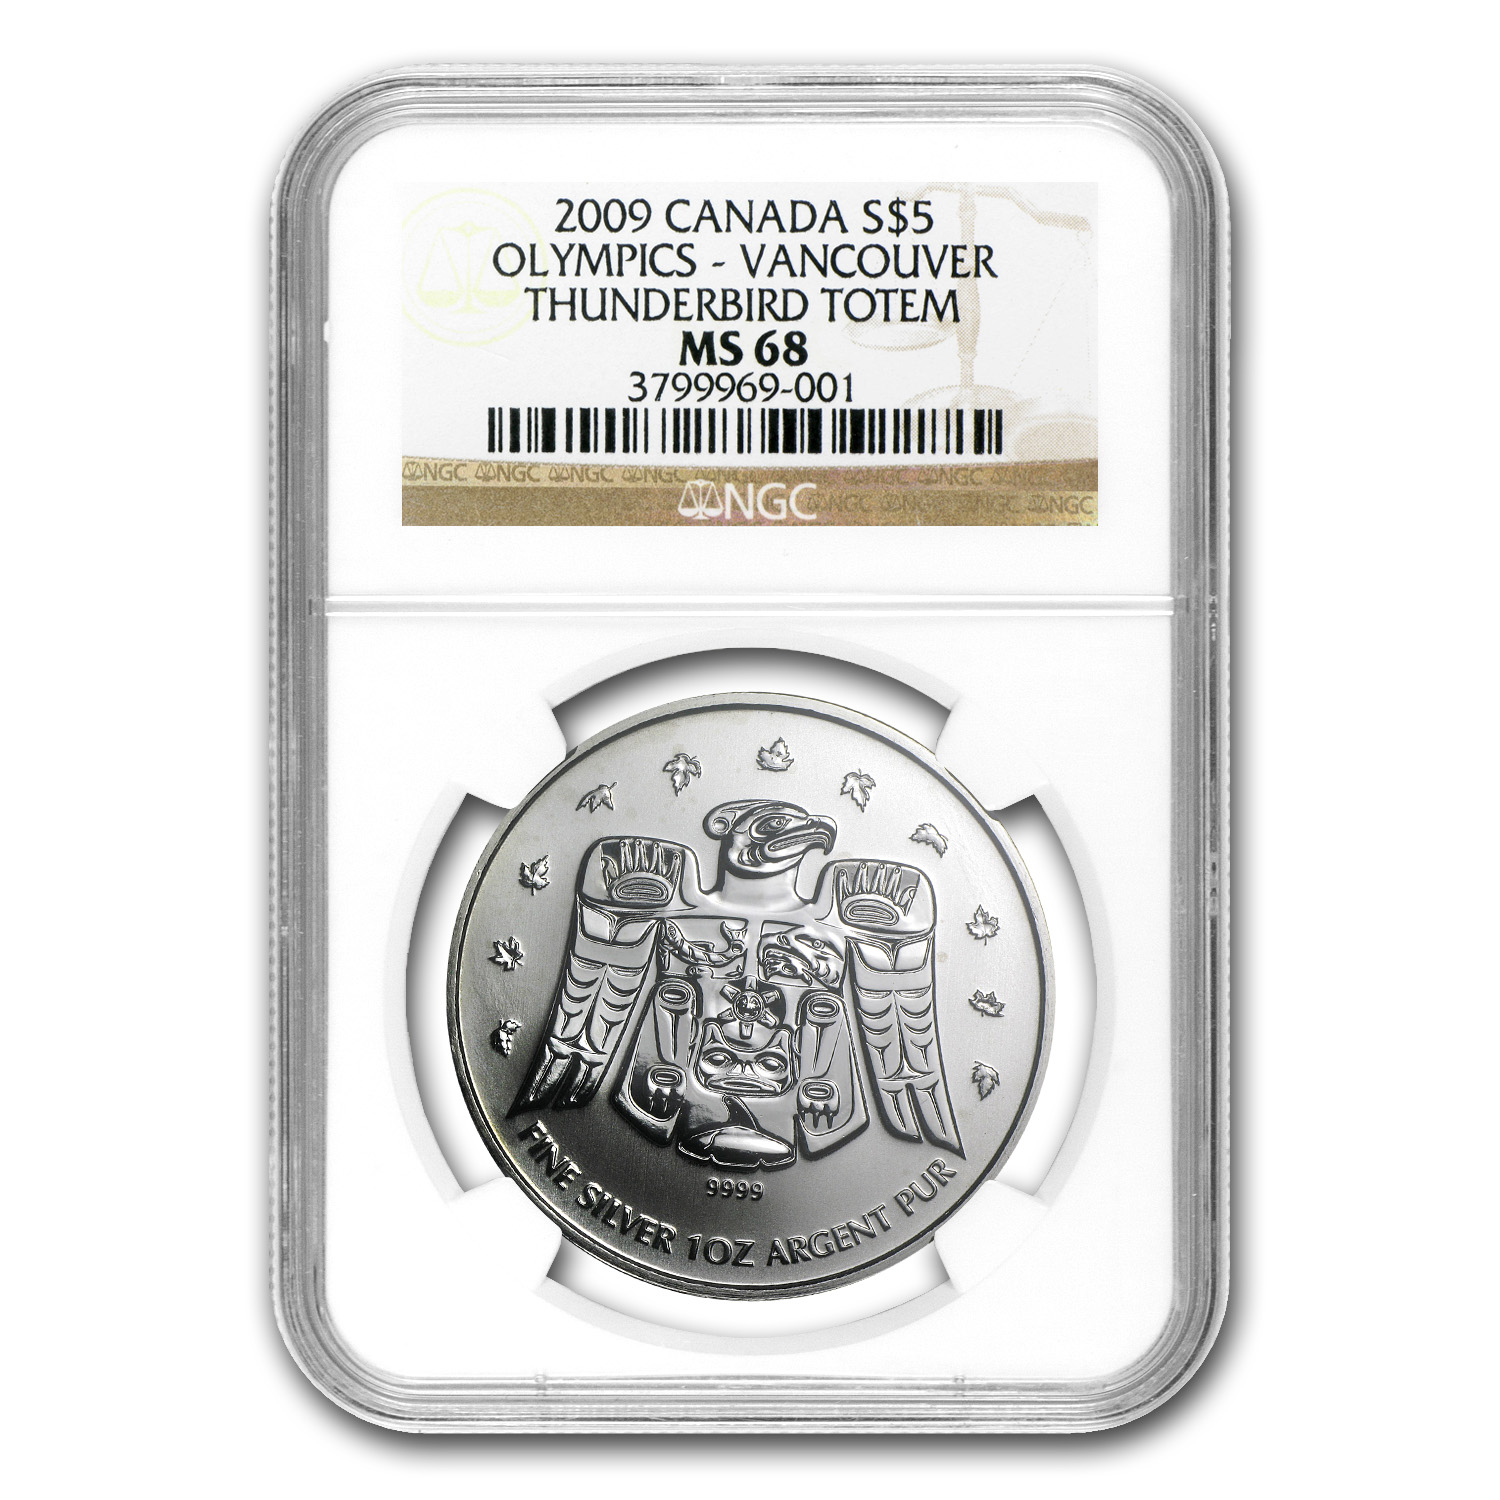 2009 Canada 1 oz Silver Olympic Thunderbird Totem MS-68 NGC